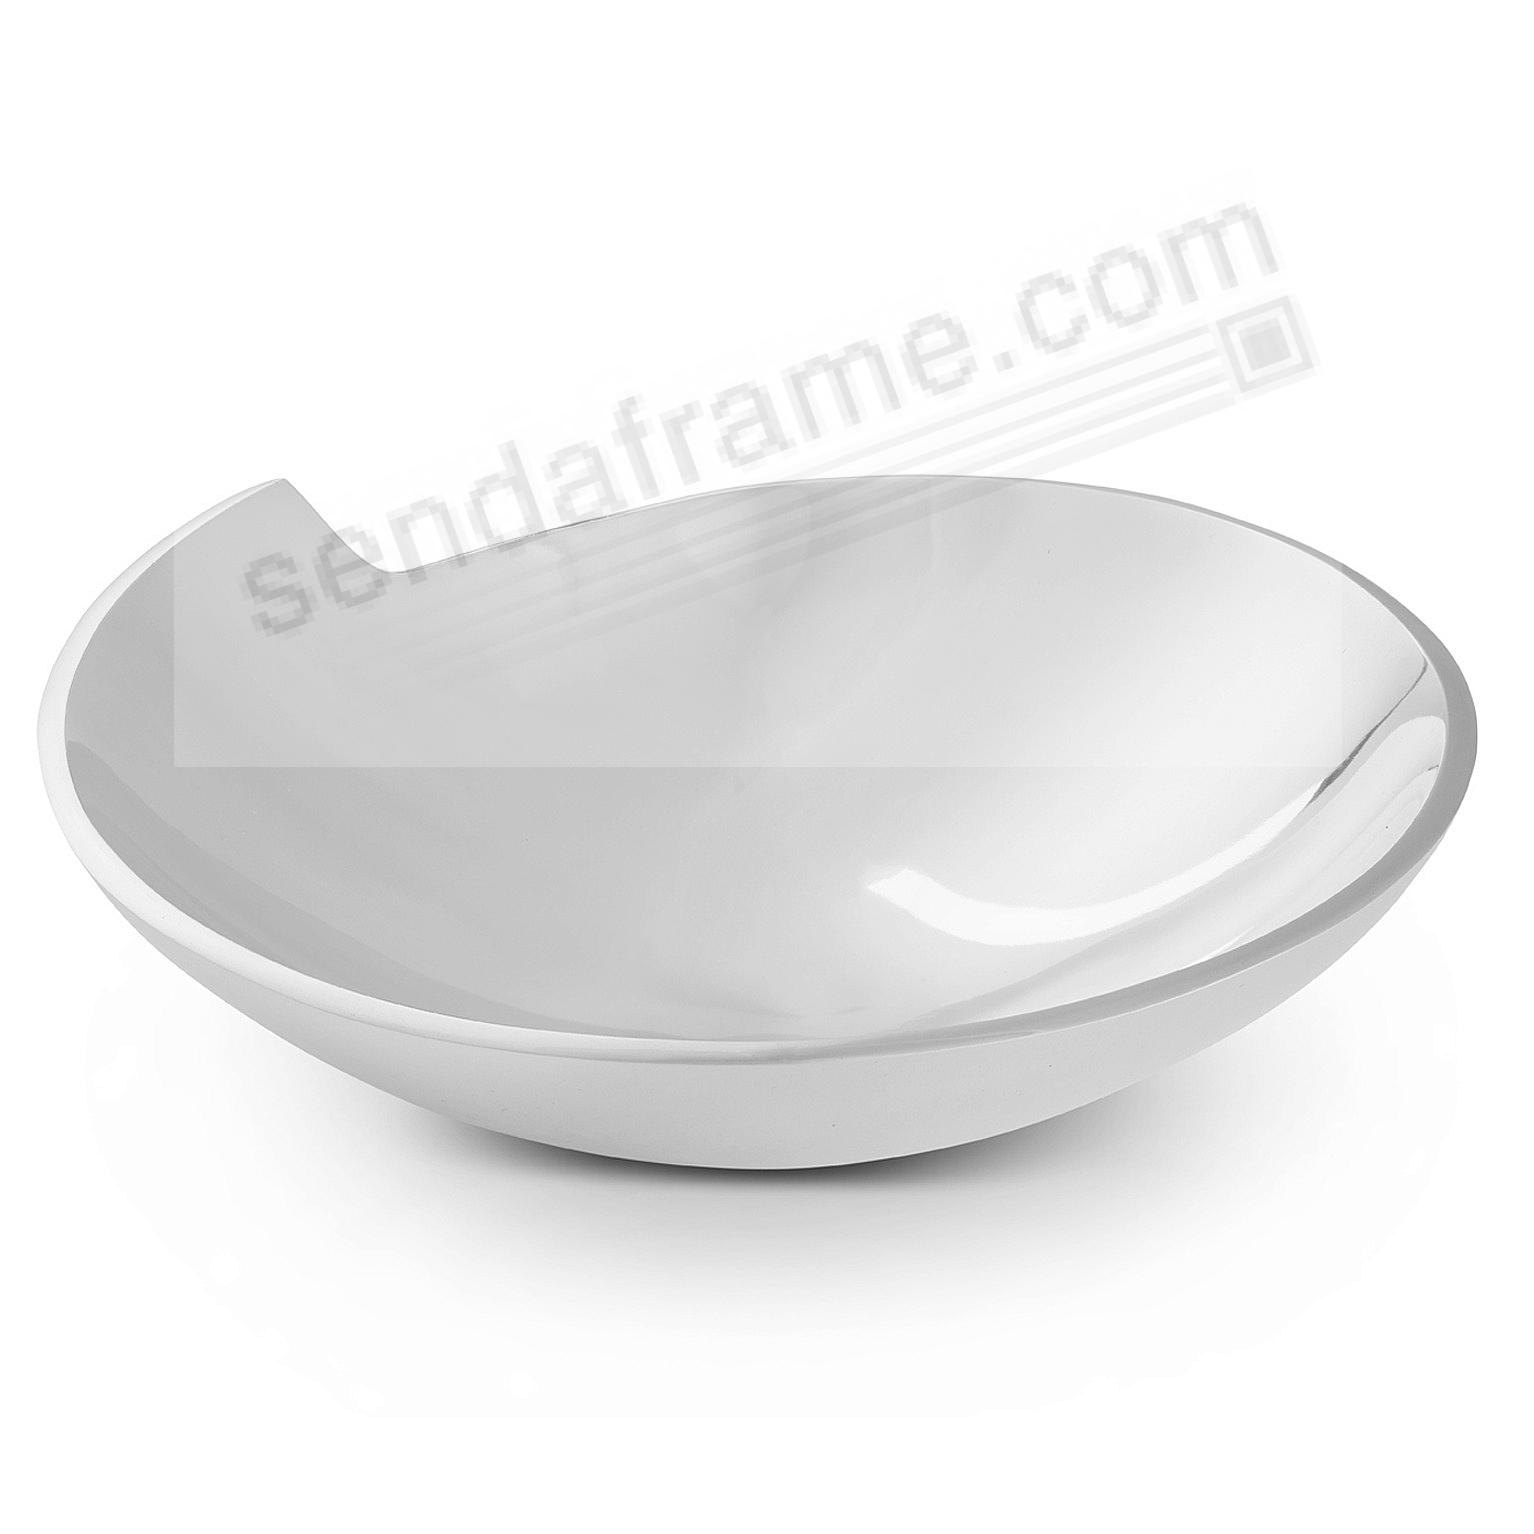 The SPIRAL 10inch SERVING BOWL crafted by Nambe®